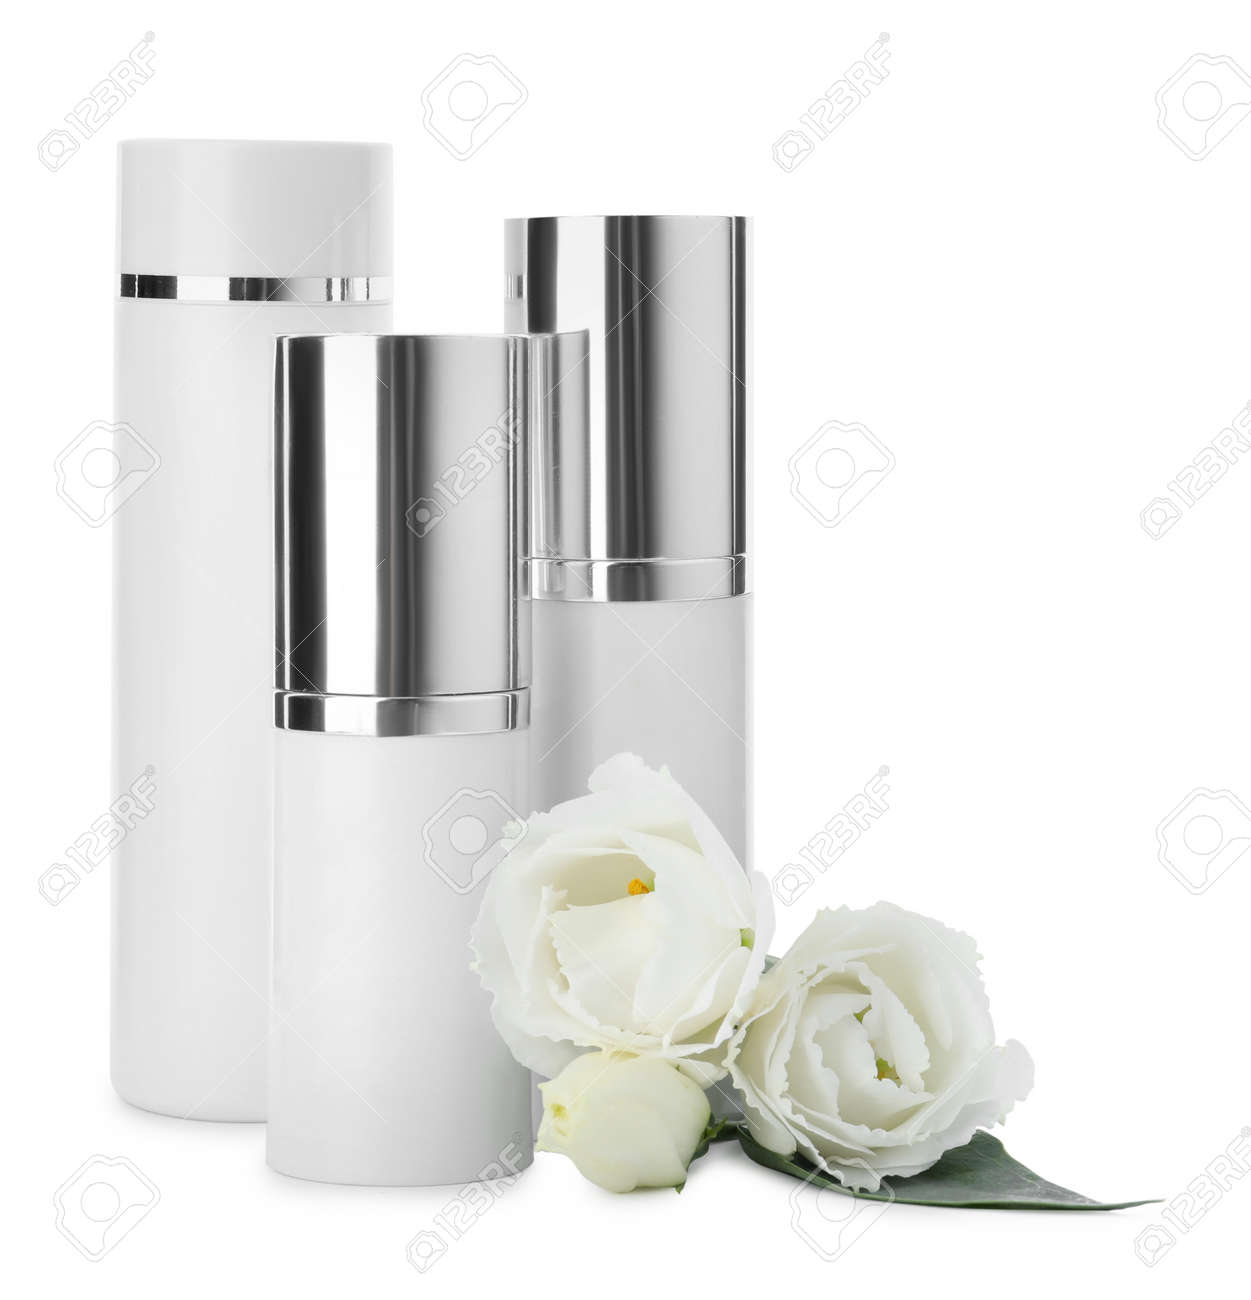 Different cosmetic products and fresh flowers on white background - 165360634